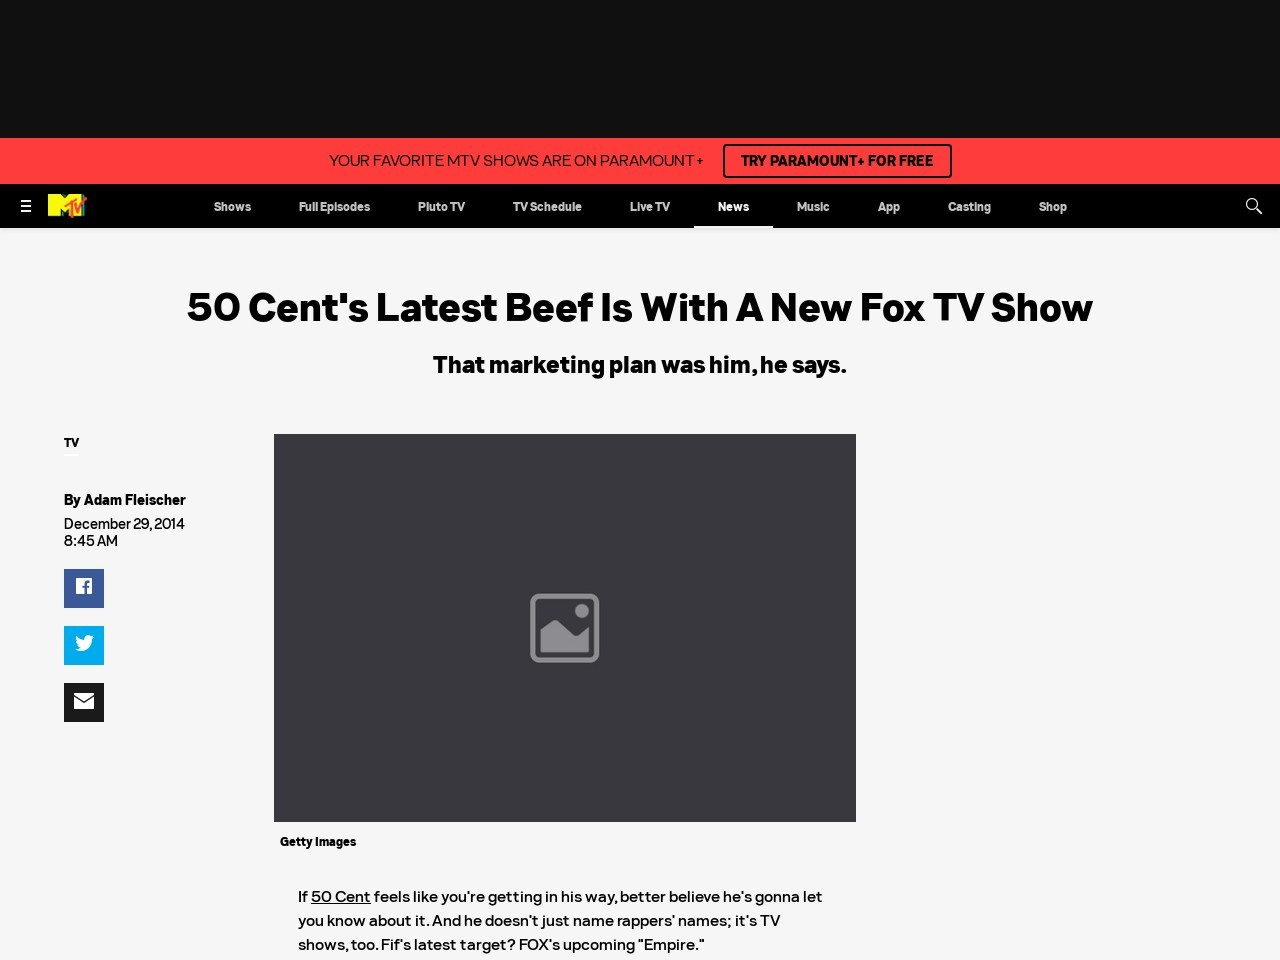 50 Cent's Latest Beef Is With A New Fox TV Show